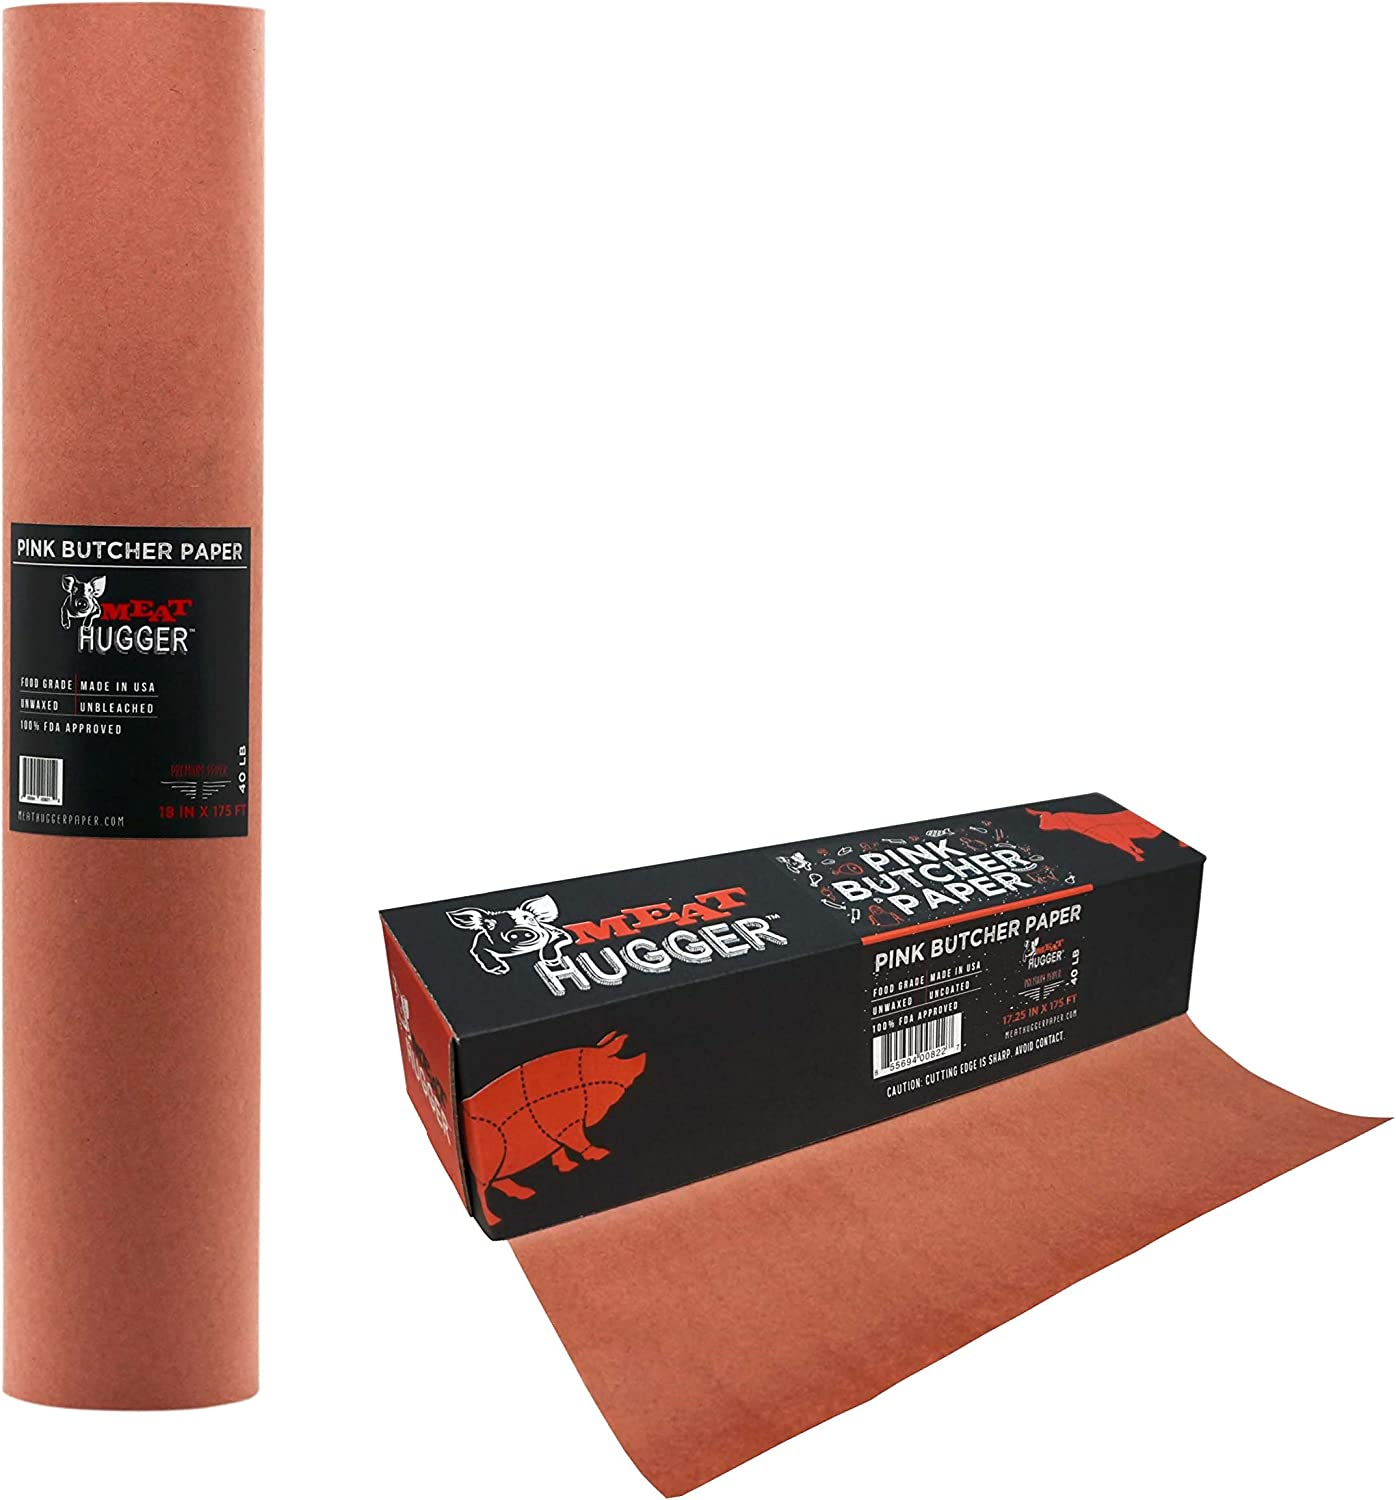 Pink Butcher Paper - For Meat Smoking and Barbecue - Heavy Duty Unwaxed Food Grade Paper - Smoker Safe - Wrap While Cooking For Tender Steak, Brisket, and More - Unbleached Roll With Dispenser